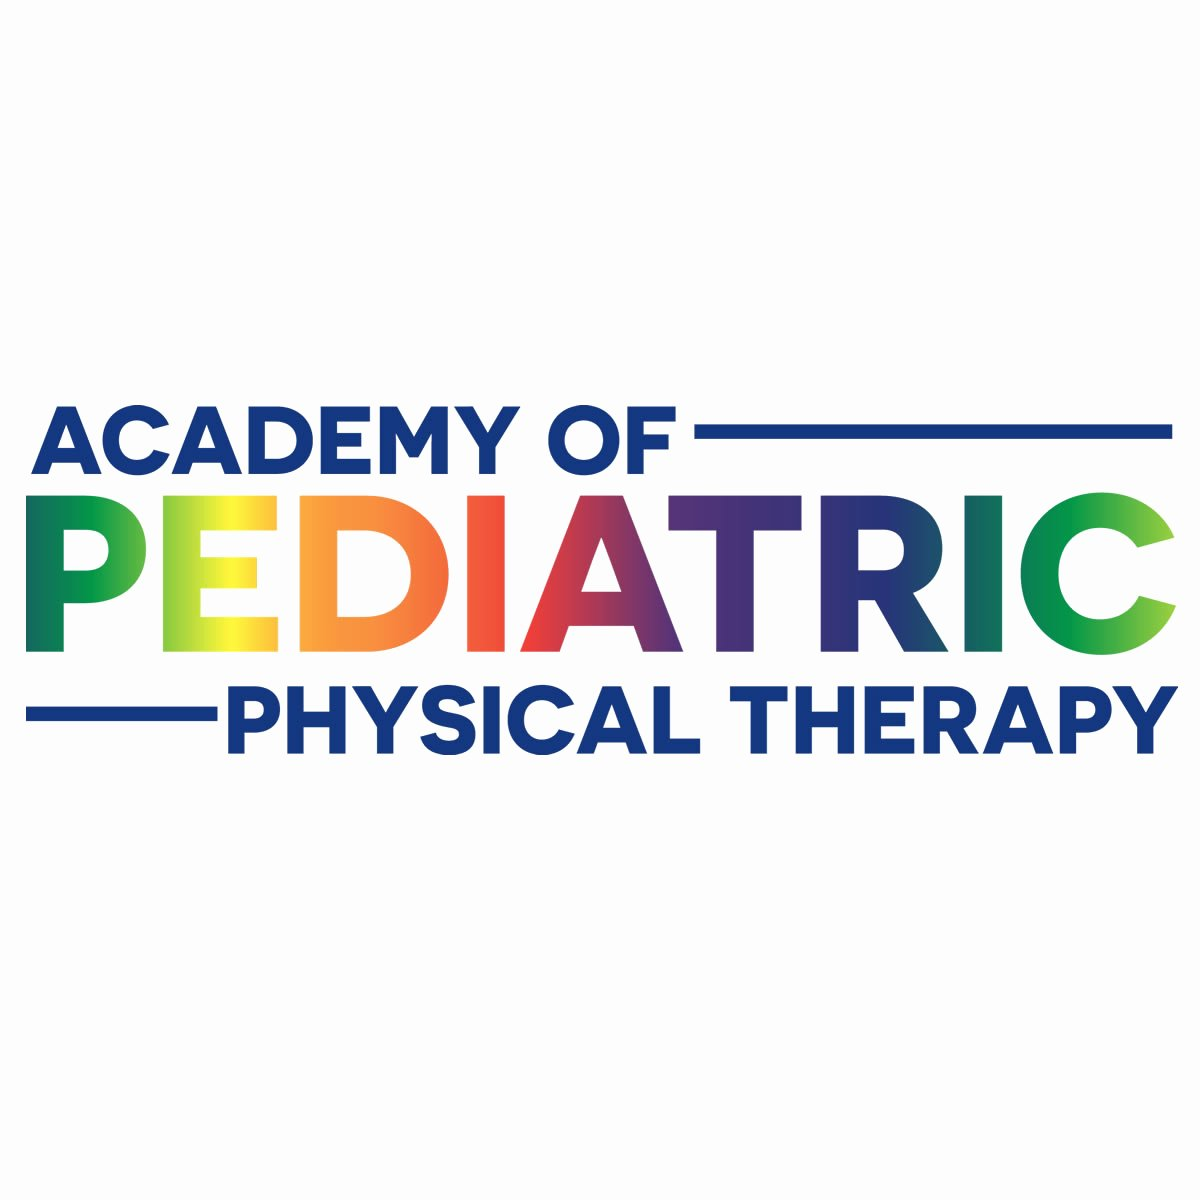 Physical therapy Initial Evaluation Template Inspirational Home Academy Of Pediatric Physical therapy Apta